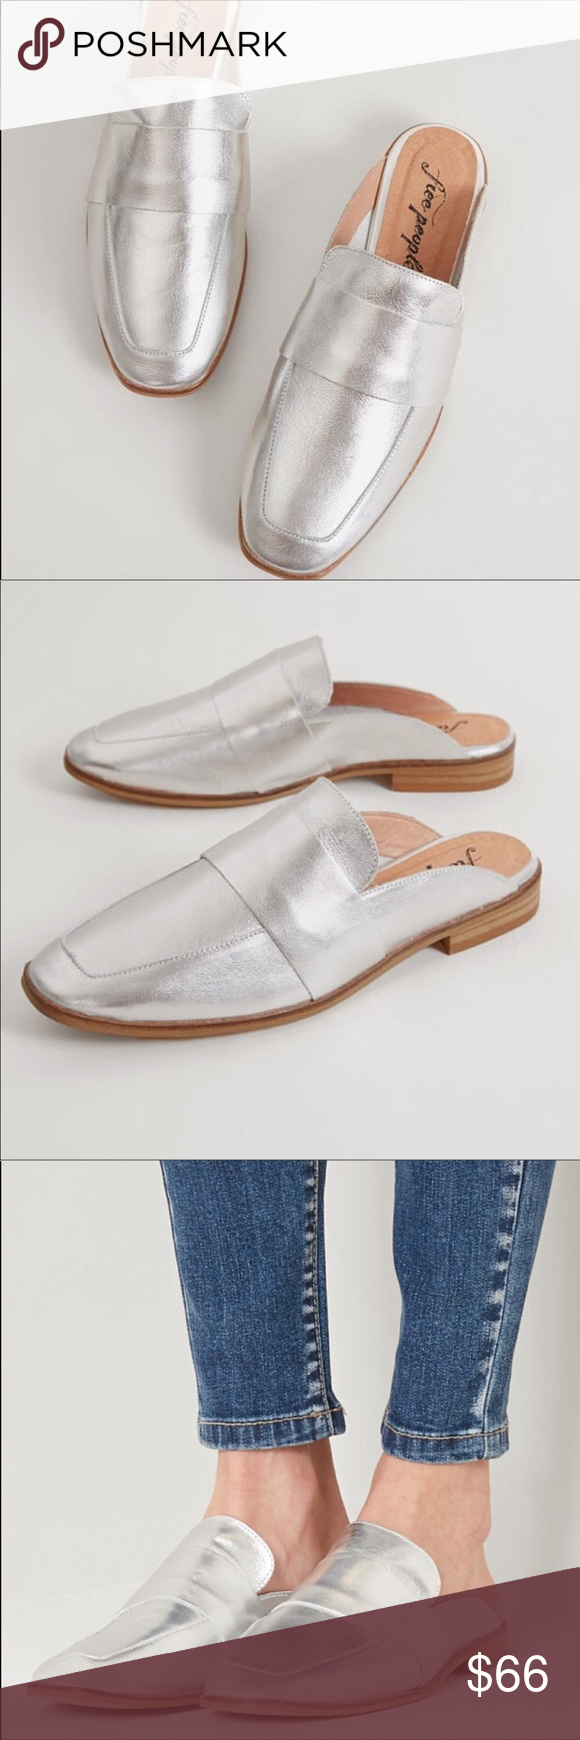 04d71ef6949 FREE PEOPLE silver leather slip on loafer mules New withbox FREE PEOPLE  silver leather slip on loafer mules Size 38   approx women s size 7.5  Retails  98 + ...